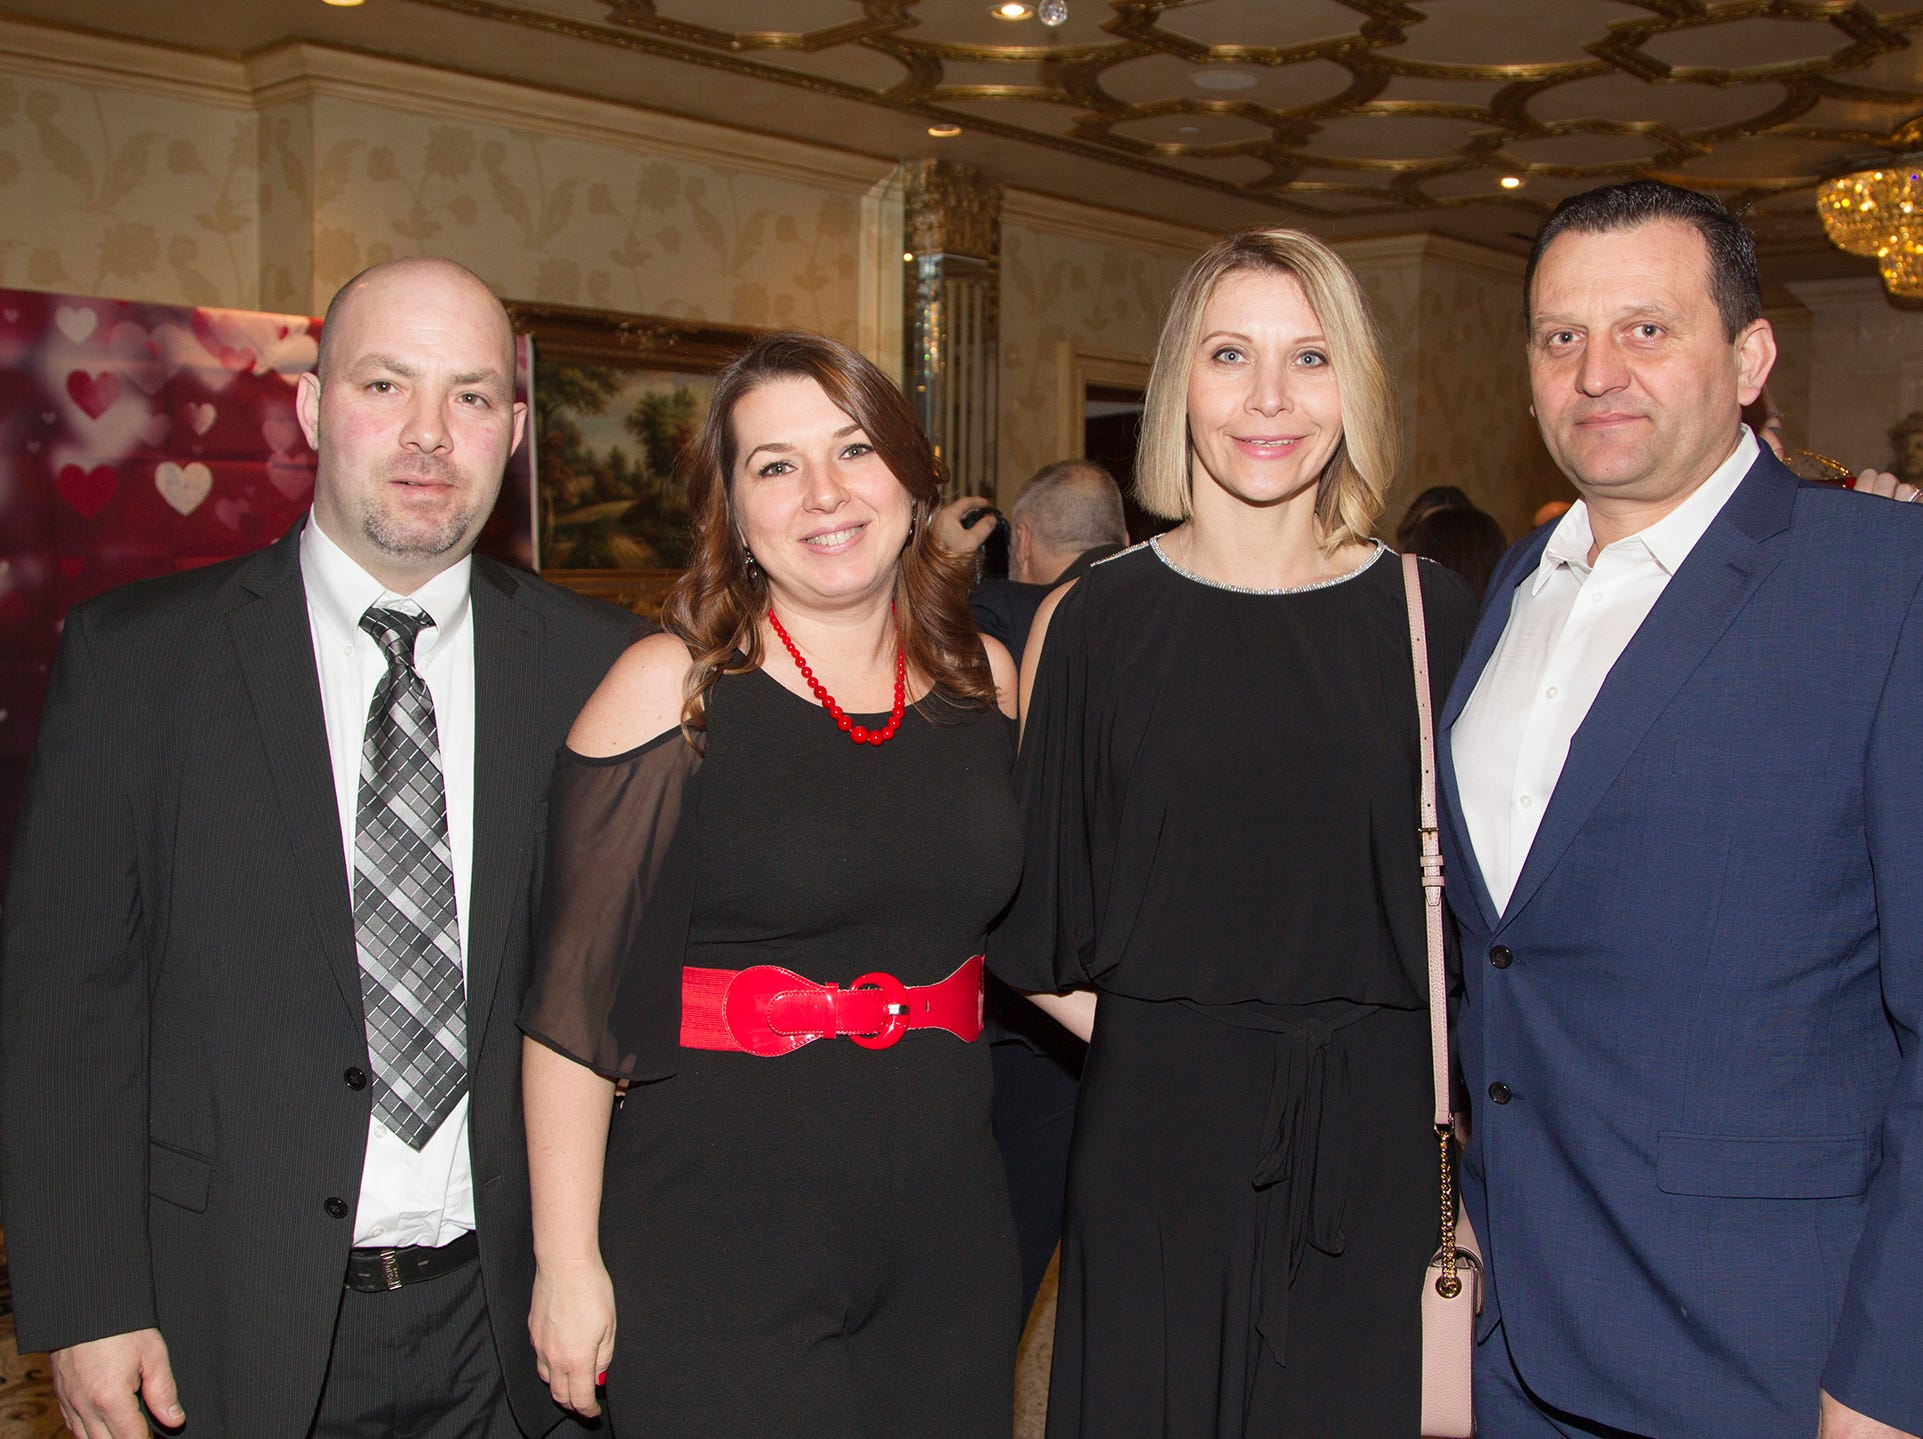 Thomas and Marcy Gloc, Gosha and Leszek Brzozowski.Institute for Educational Achievement (IEA) held its annual Dinner Dance at Seasons in Washington Township. 02/02/2019